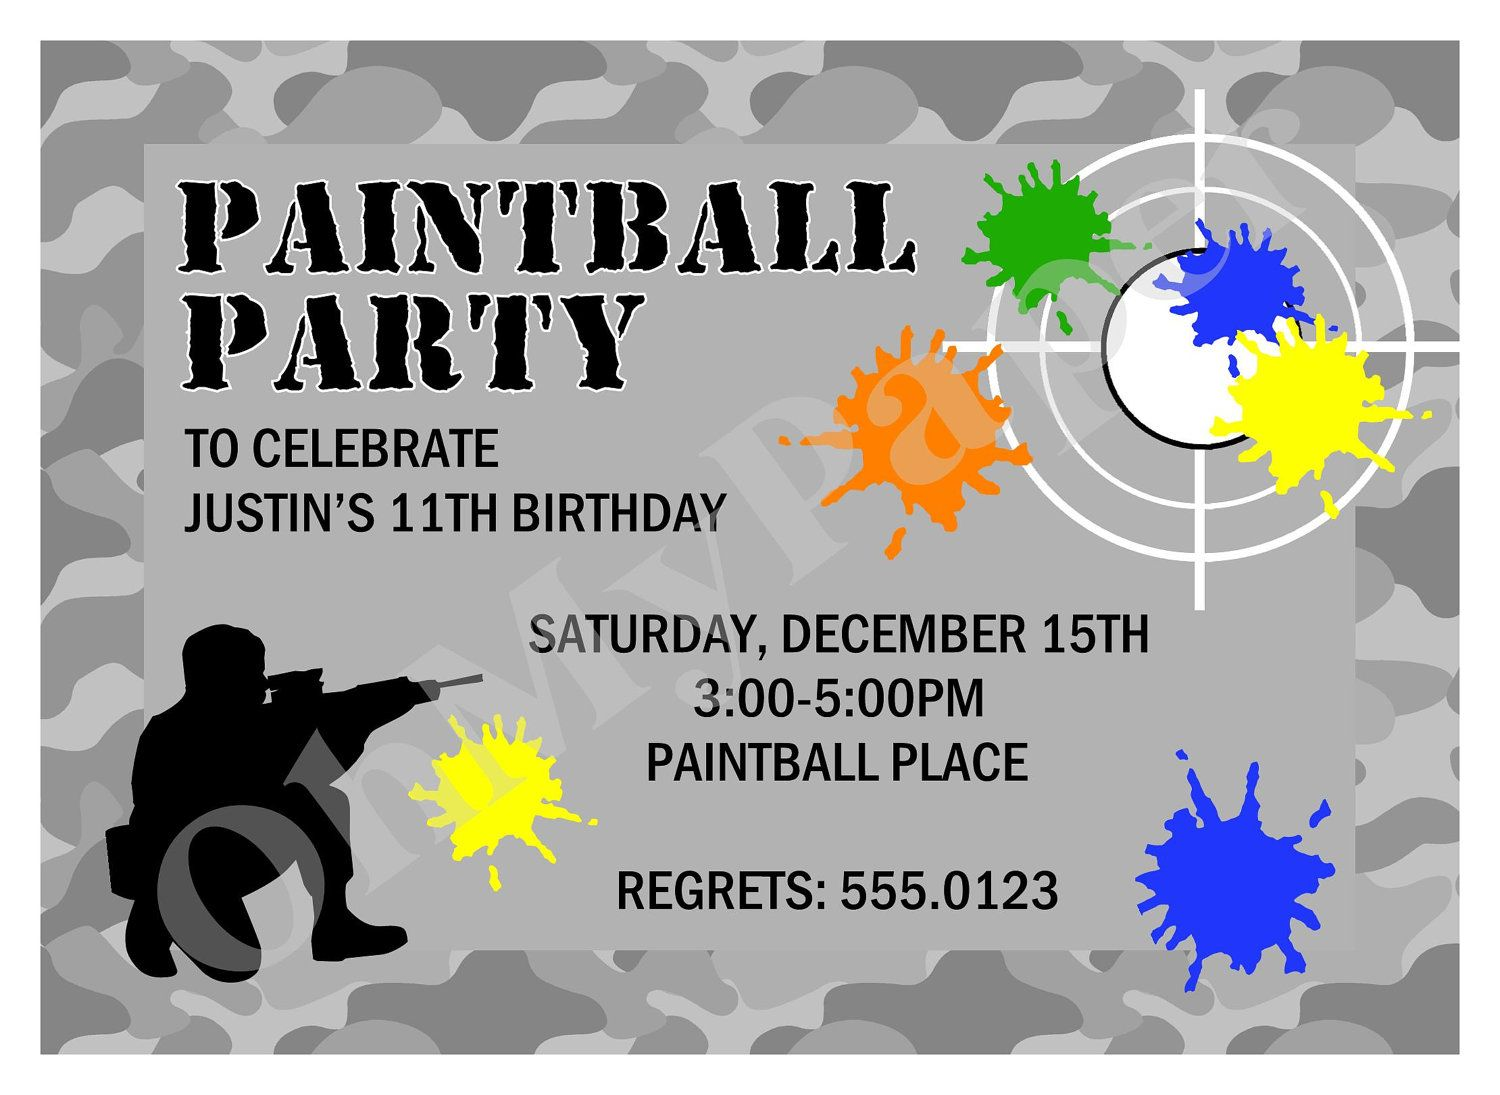 free paintball party invitation template | birthday ideas, Party invitations